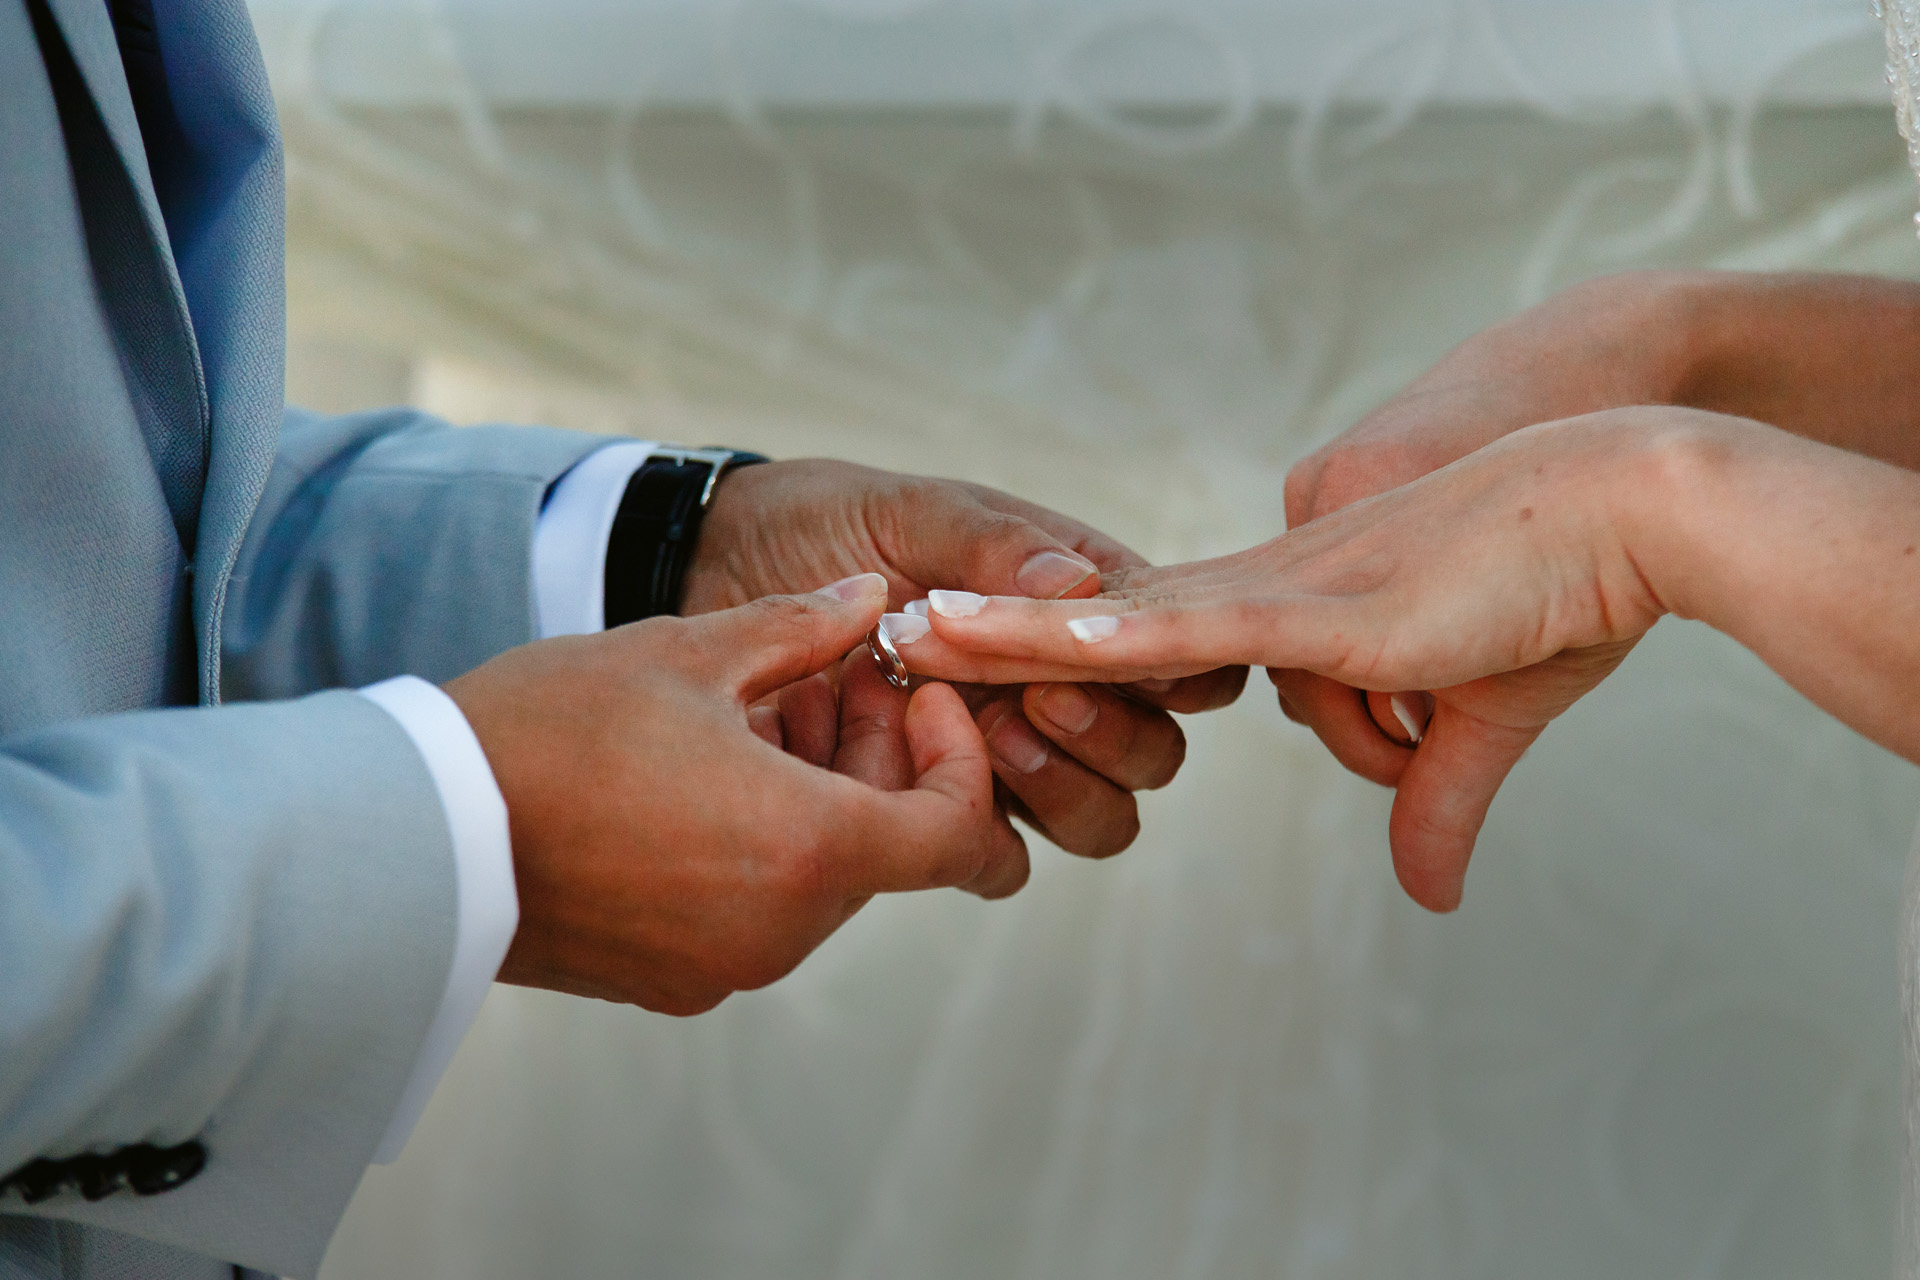 Elopement in Kyrenia, Cyprus - Ring Ceremony Photo | the final part was the exchange of rings